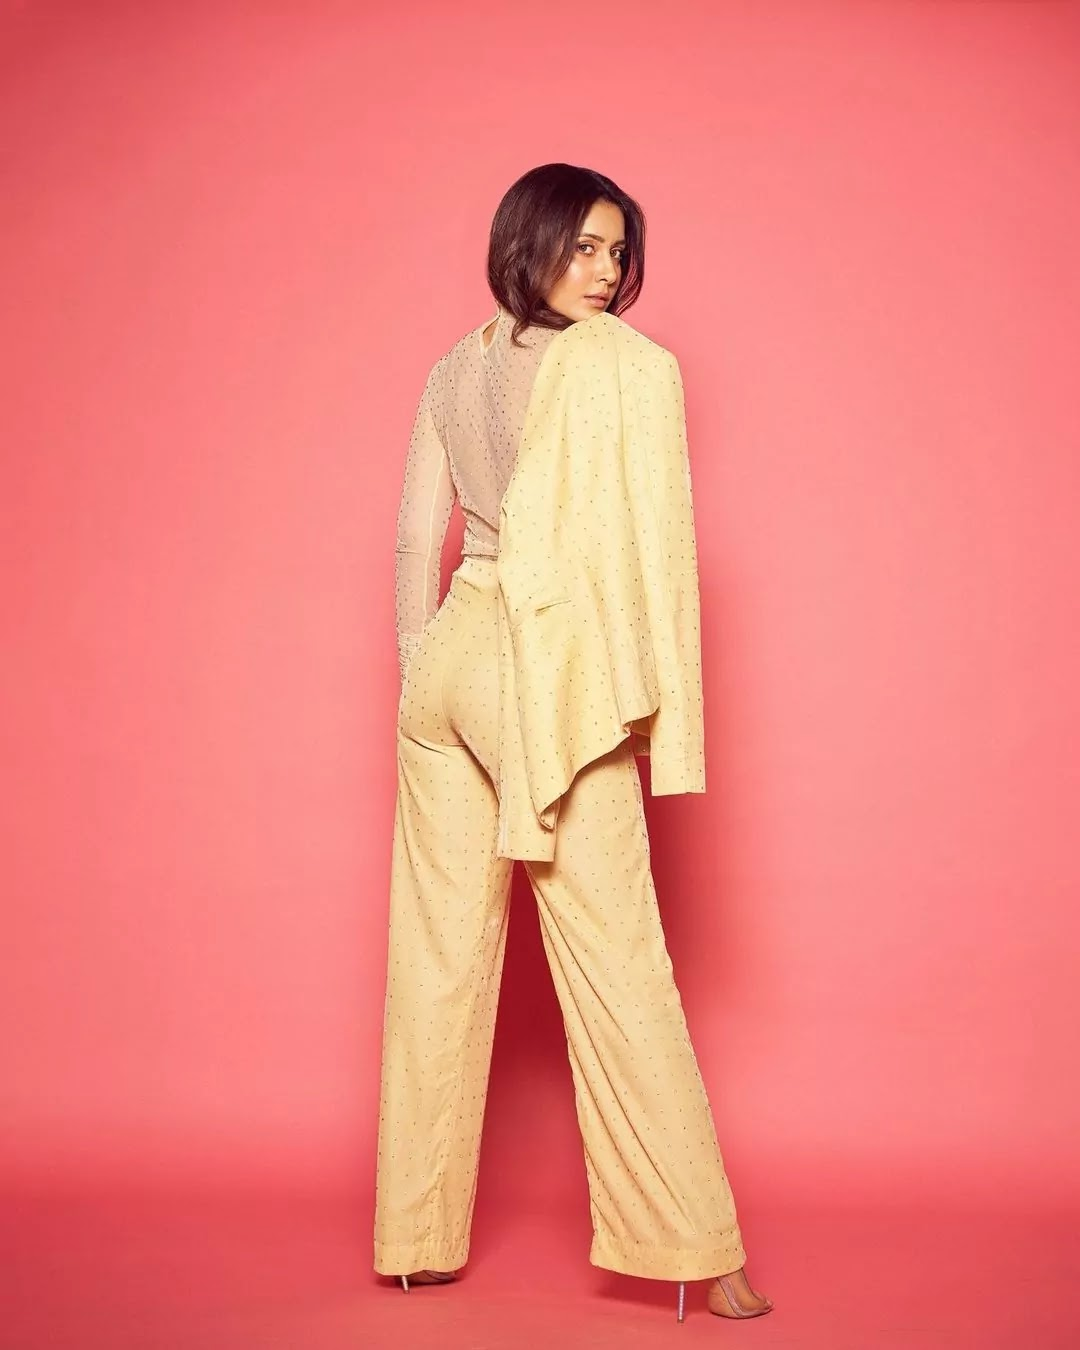 raashi-khanna-hot-looks-in-rayon-velvet-pant-suit-for-times-buisness-award